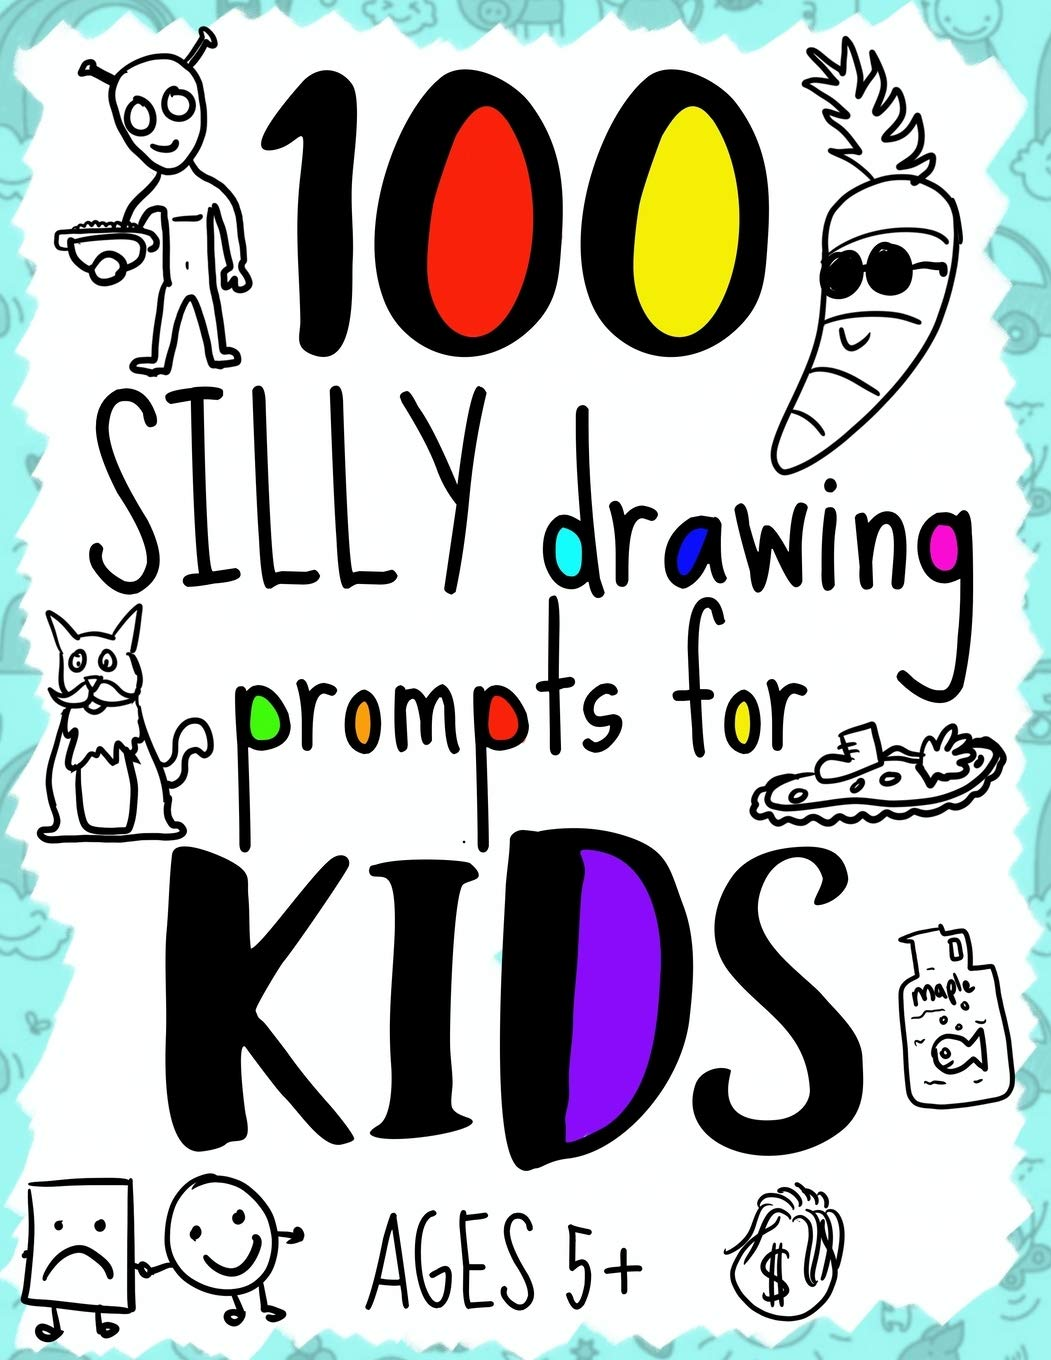 100 Silly Drawing Prompts For Kids For Ages 5 Fun Drawing Sketch Book For Kids With Silly Prompts Doodling Note Pad For Children Creative Drawing Boys Doodle Journal Perfect Birthday Gag Anyone can submit a drawing prompt. 100 silly drawing prompts for kids for